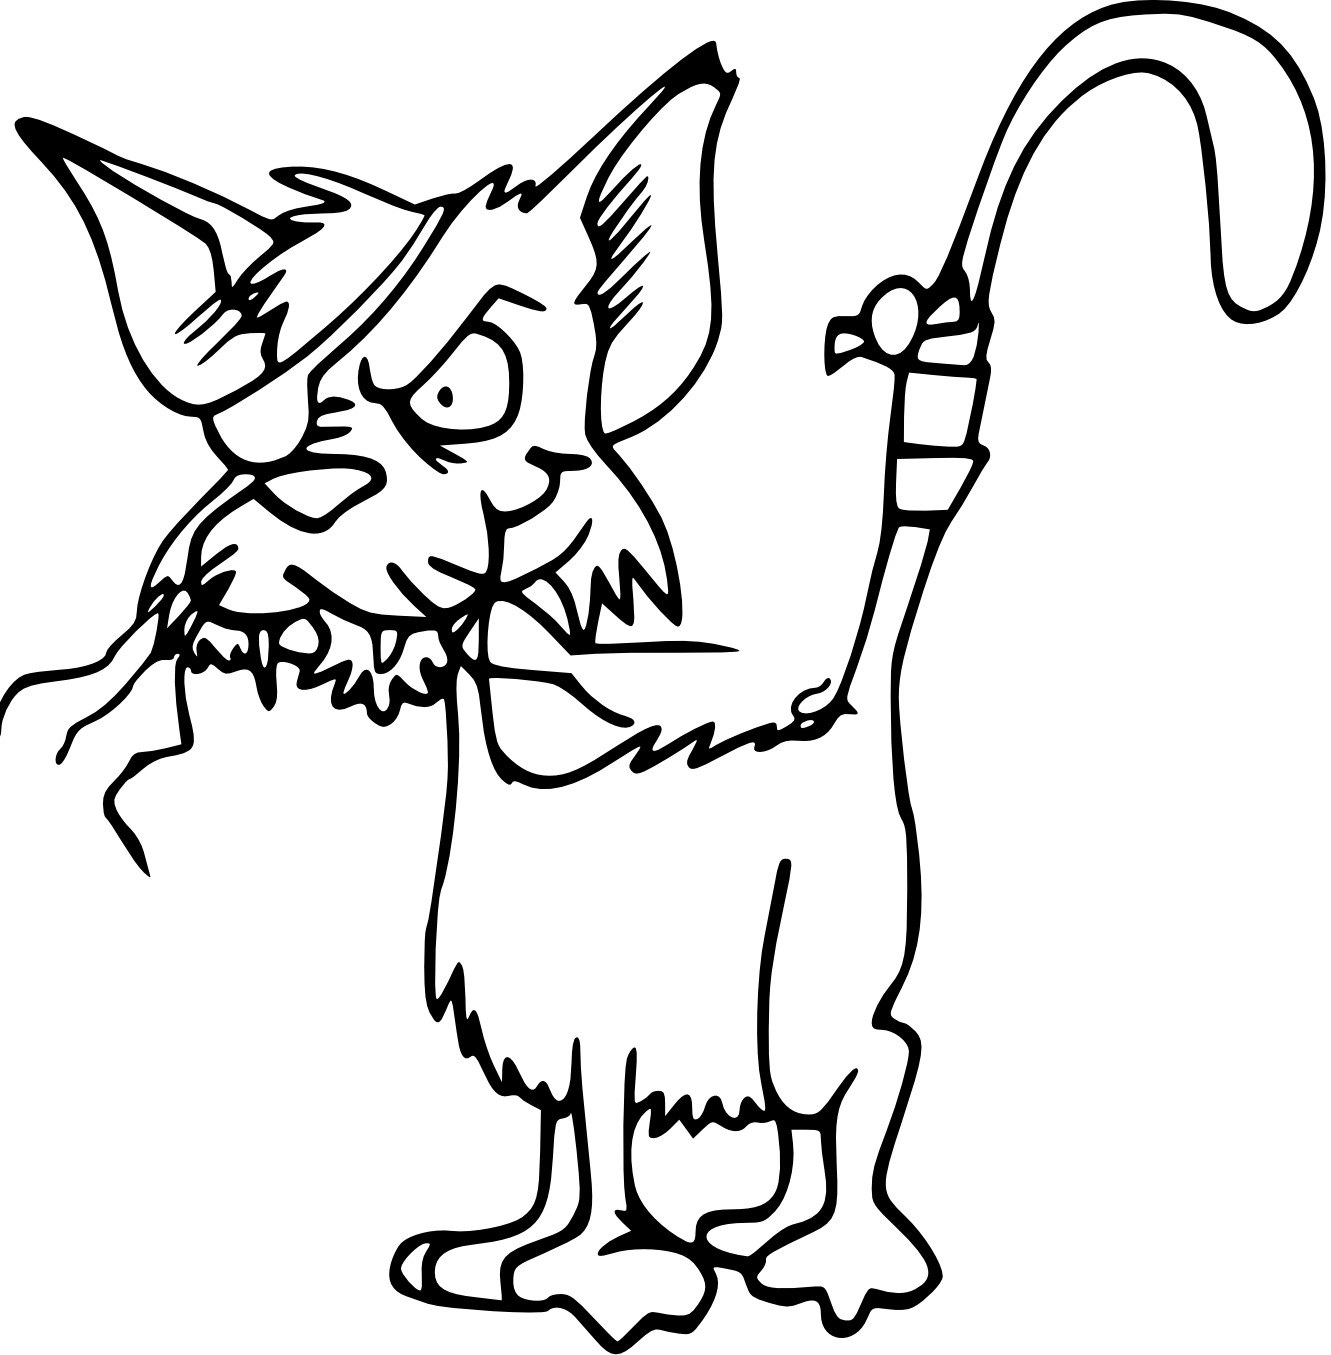 Line Drawing Kitten : Black and white drawings of cats clipart best